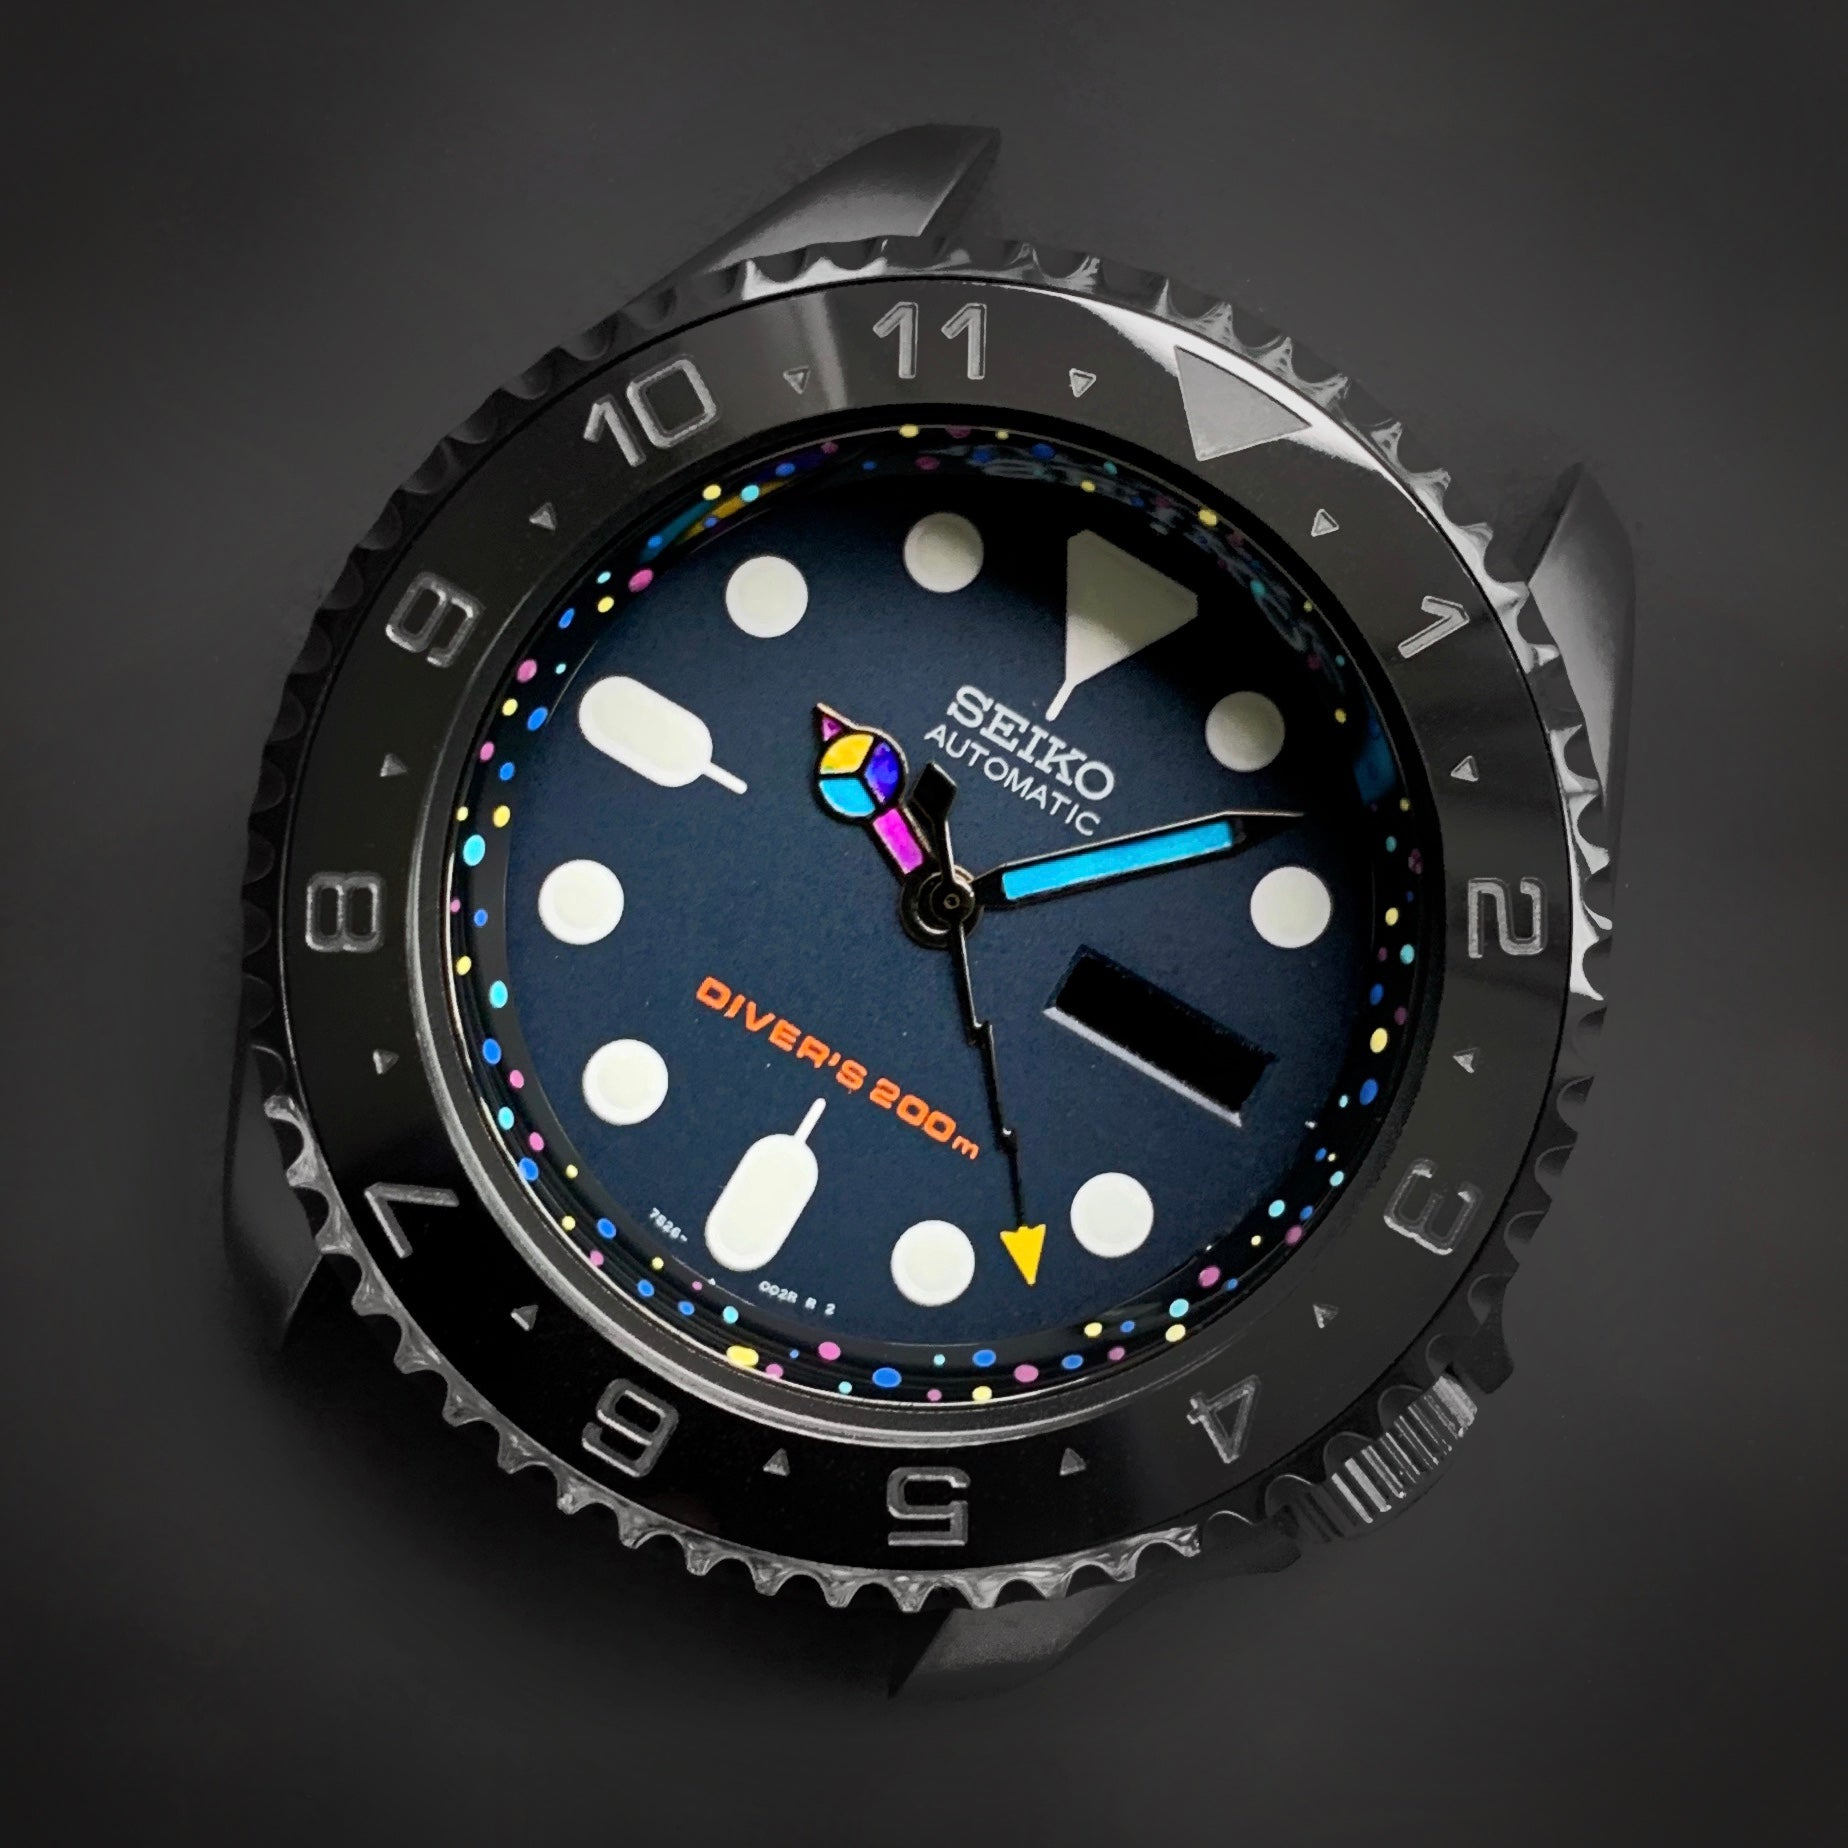 C.R. - SKX007 - Hand Painted Series - Specks (Steel)